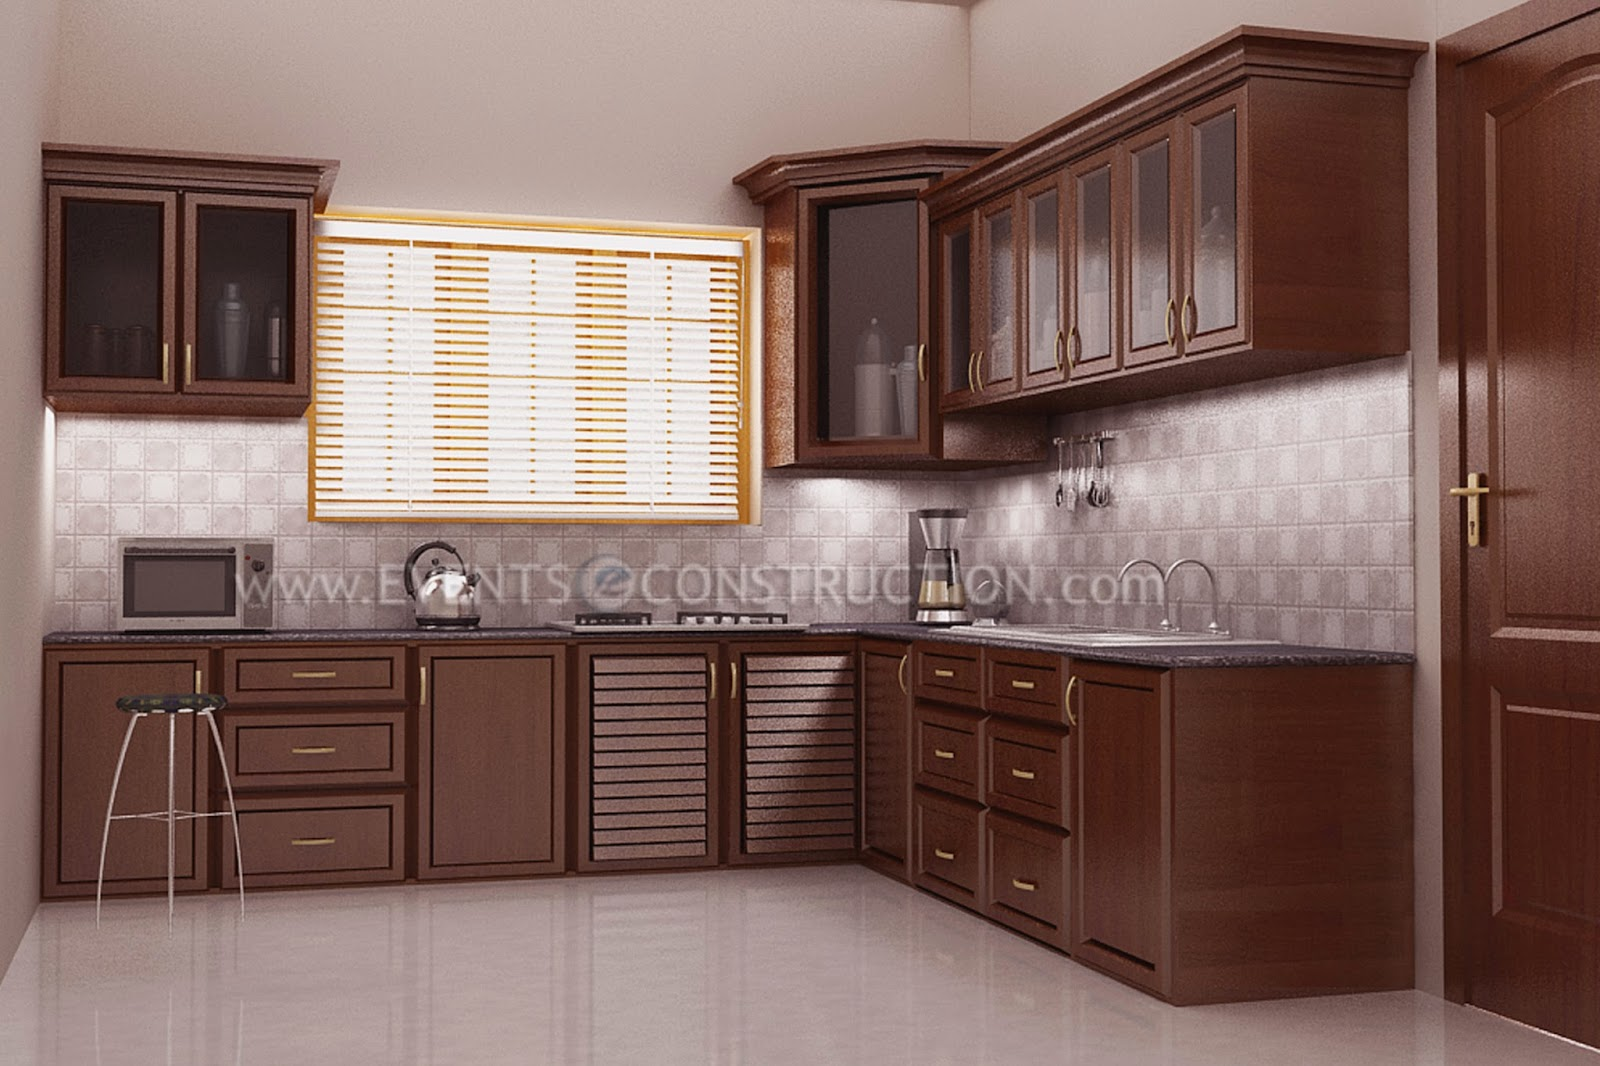 Evens construction pvt ltd kitchen design with wooden for New model house interior design